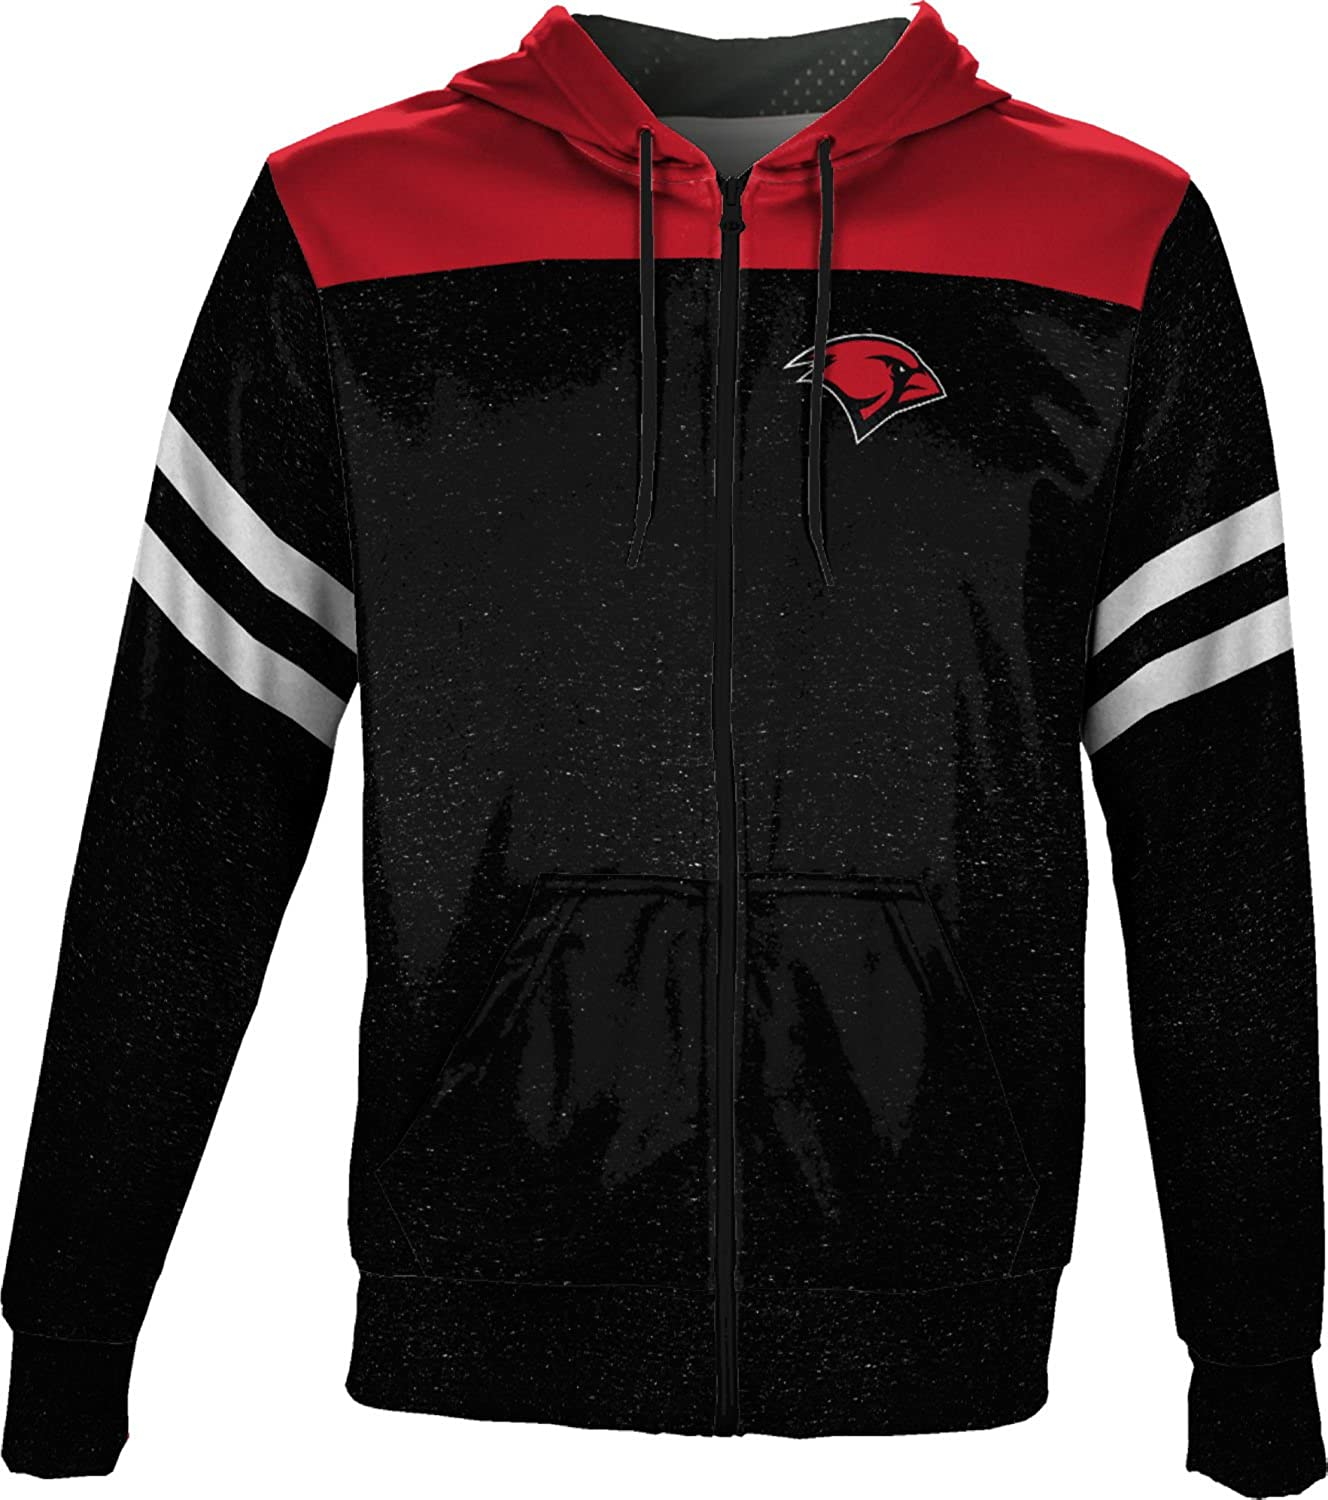 End Zone ProSphere University of The Incarnate Word Boys Pullover Hoodie